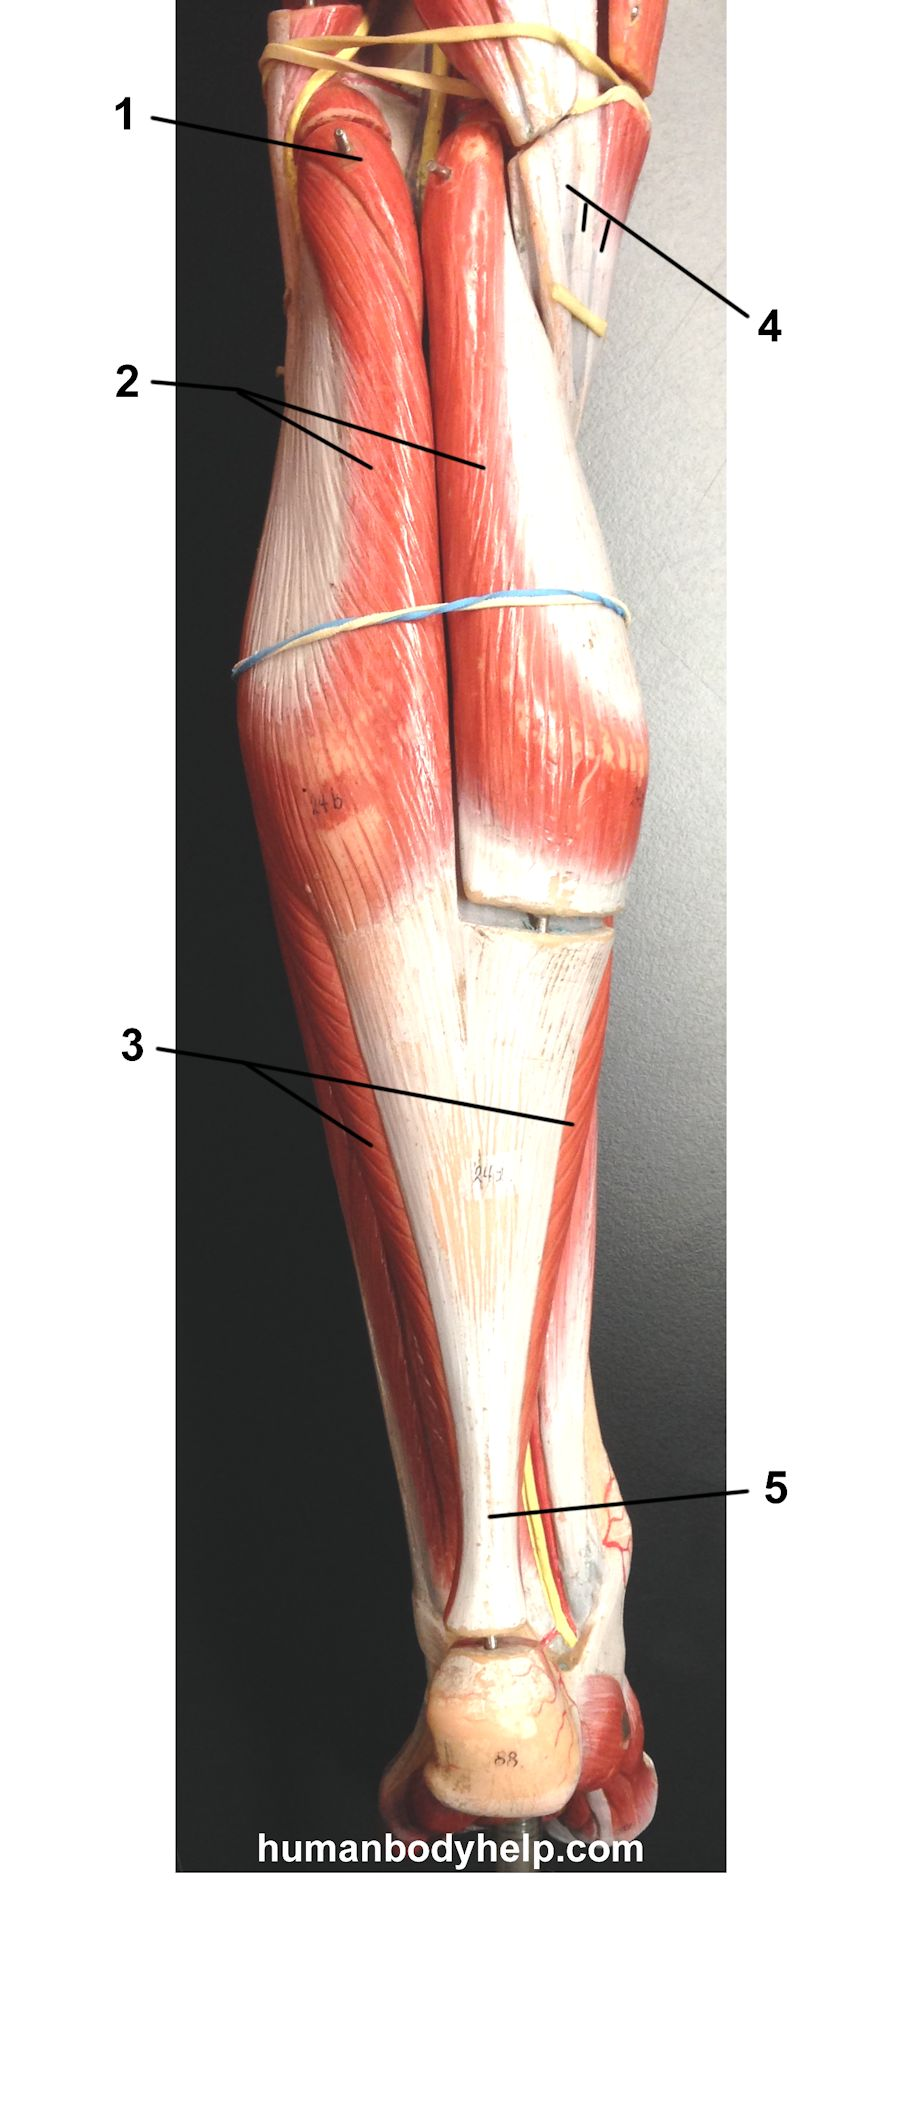 Posterior Leg Old Model Human Body Help